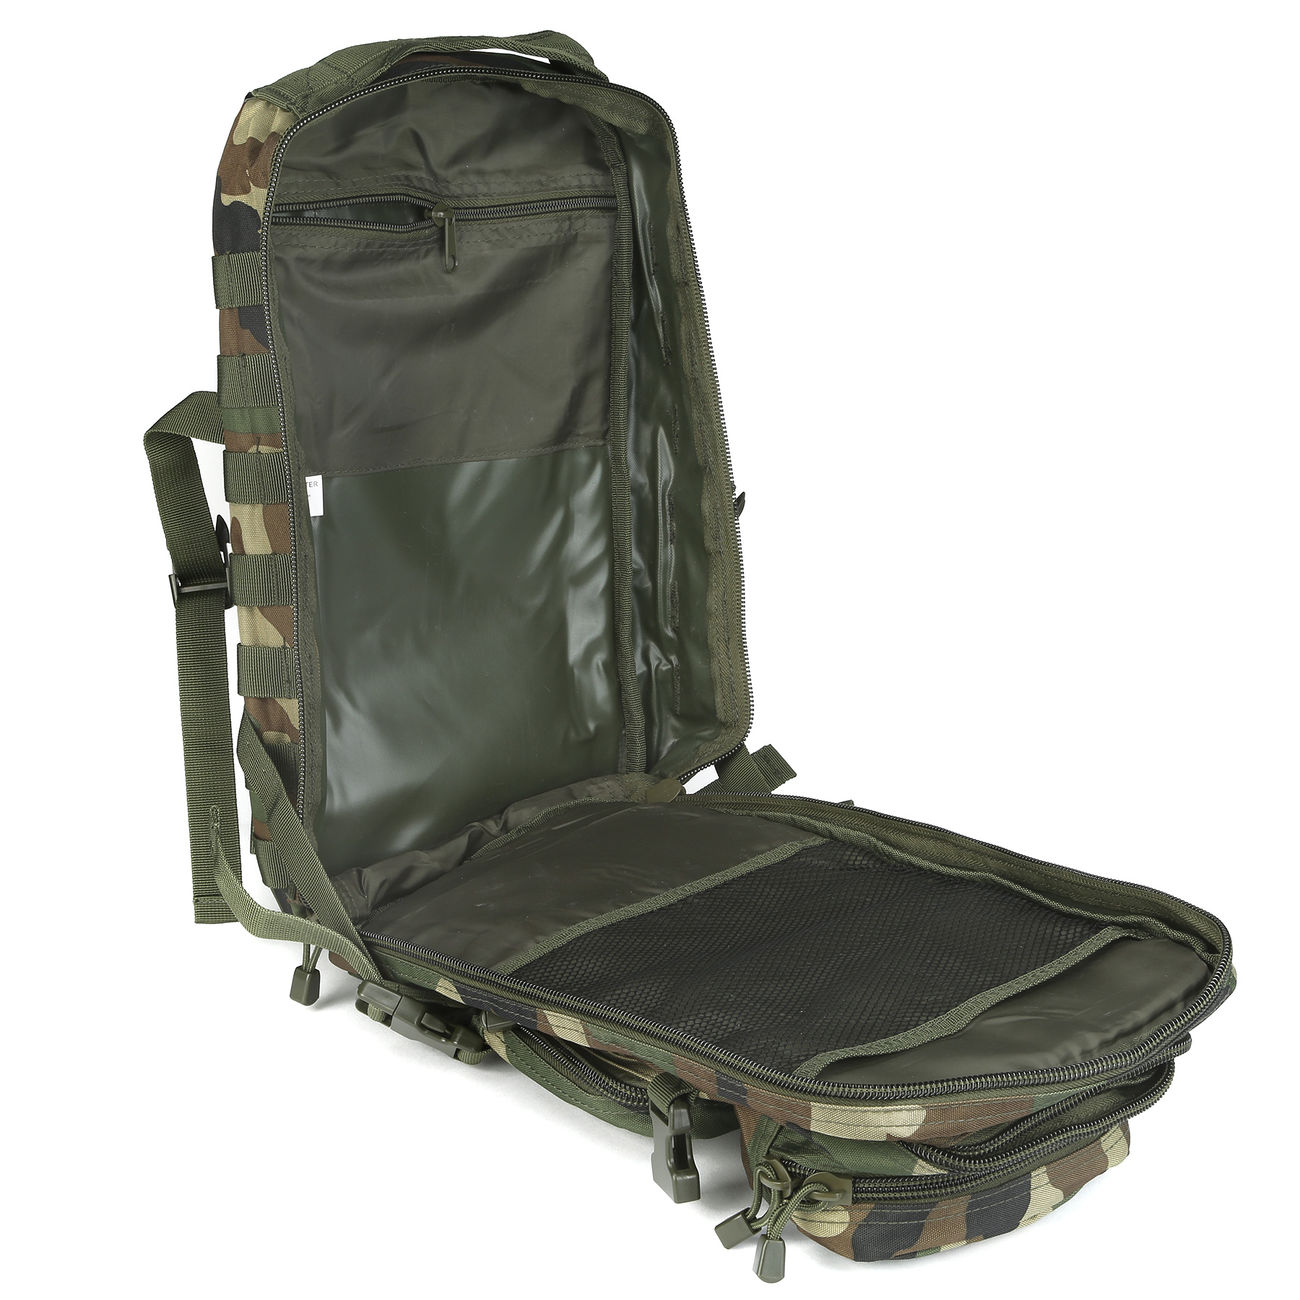 Mil-Tec Rucksack US Assault Pack I 20 Liter woodland 11